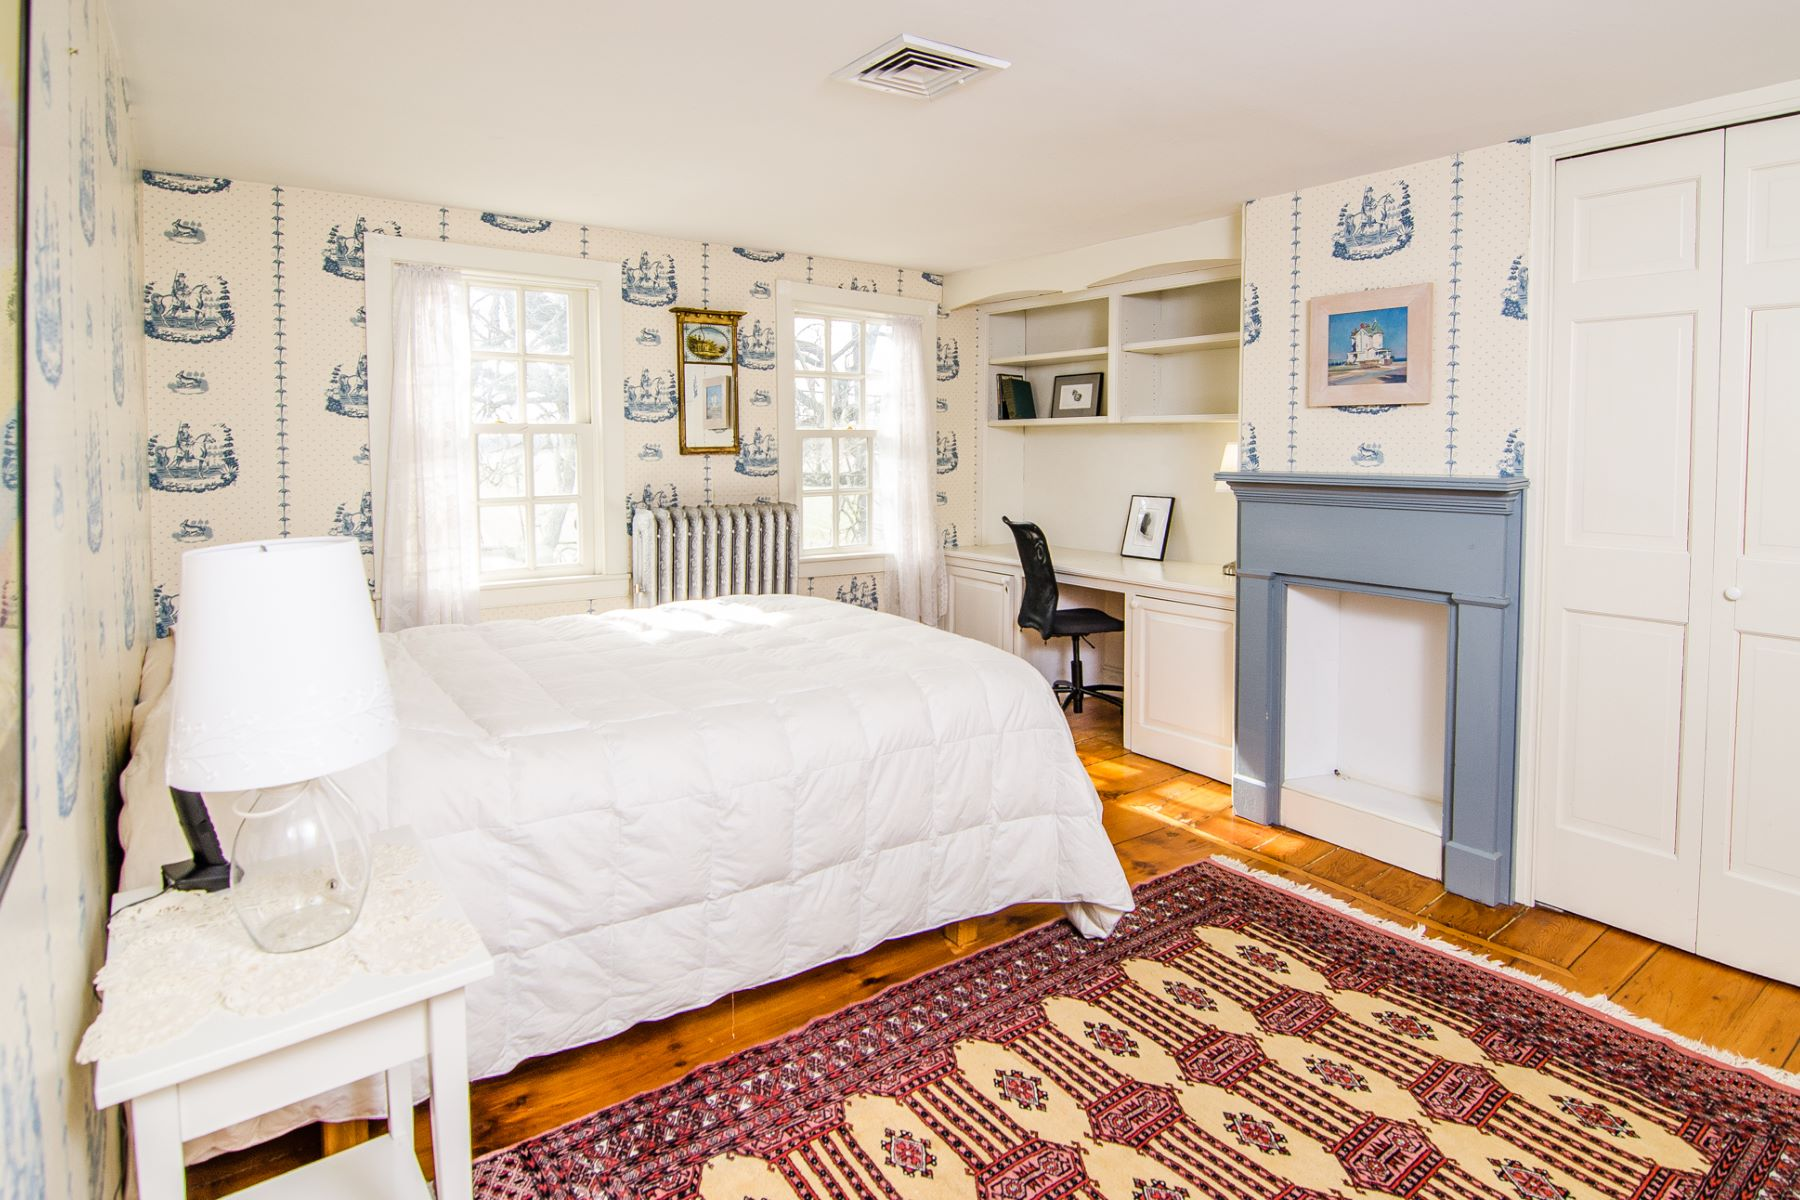 Additional photo for property listing at Meticulous Colonial Farmhouse c 1840 168 Plainsboro Road Cranbury, New Jersey 08512 United States